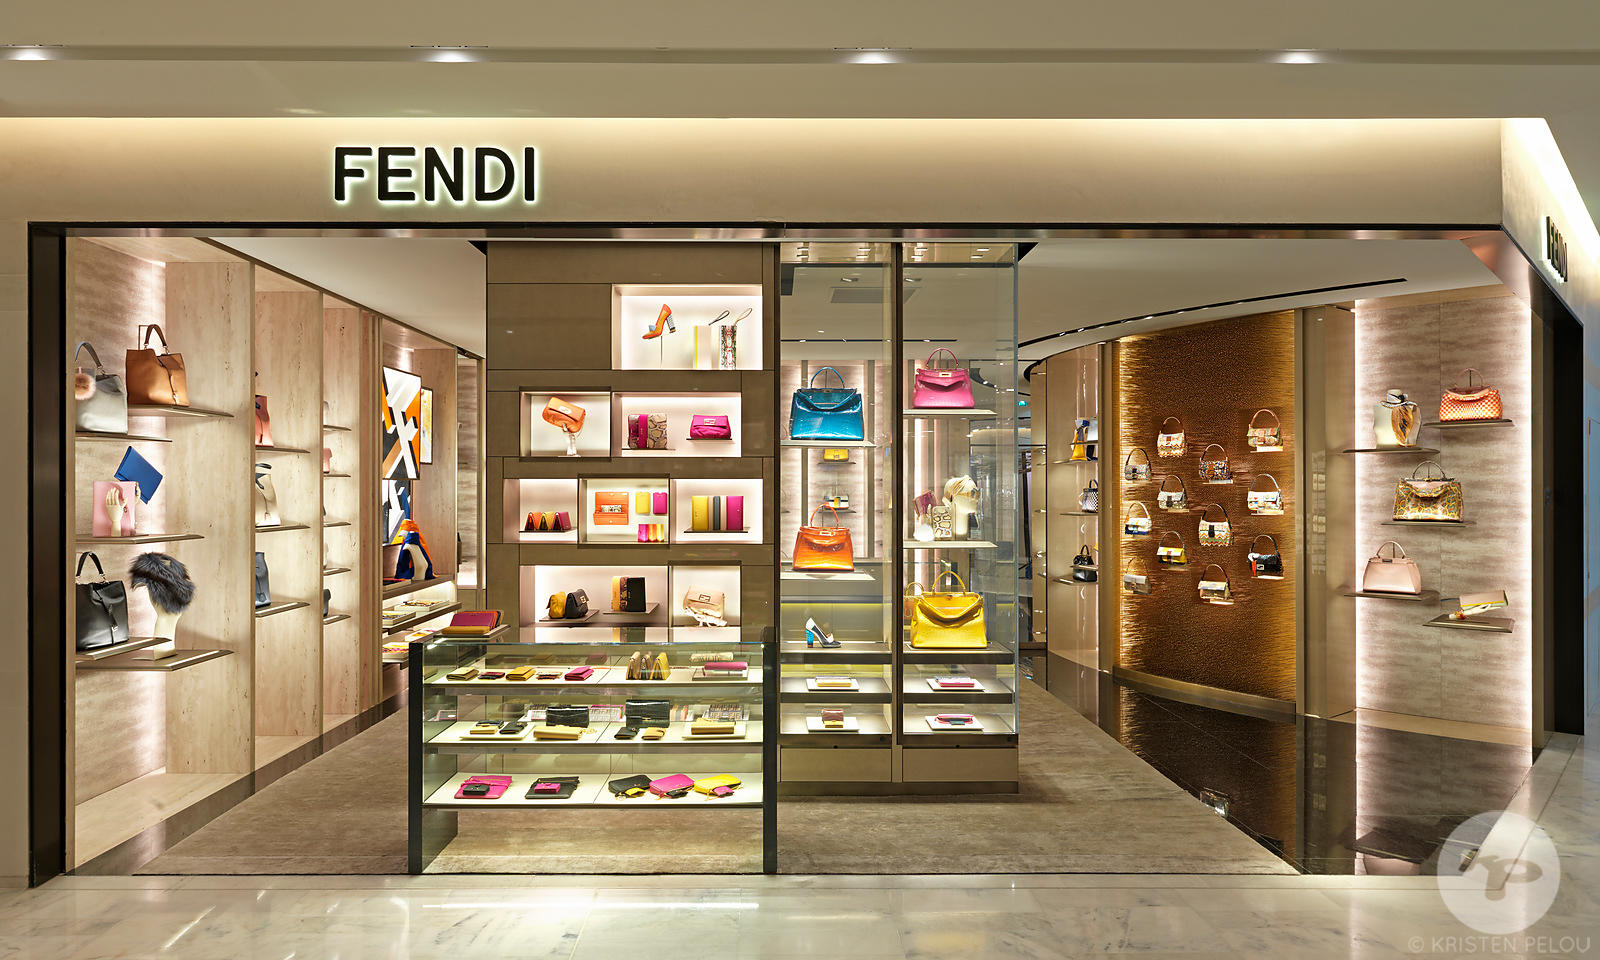 Retail architecture photographer - Fendi corner designed by Curiosity, Le Printemps Haussmann, Paris France. Photo ©Kristen P...